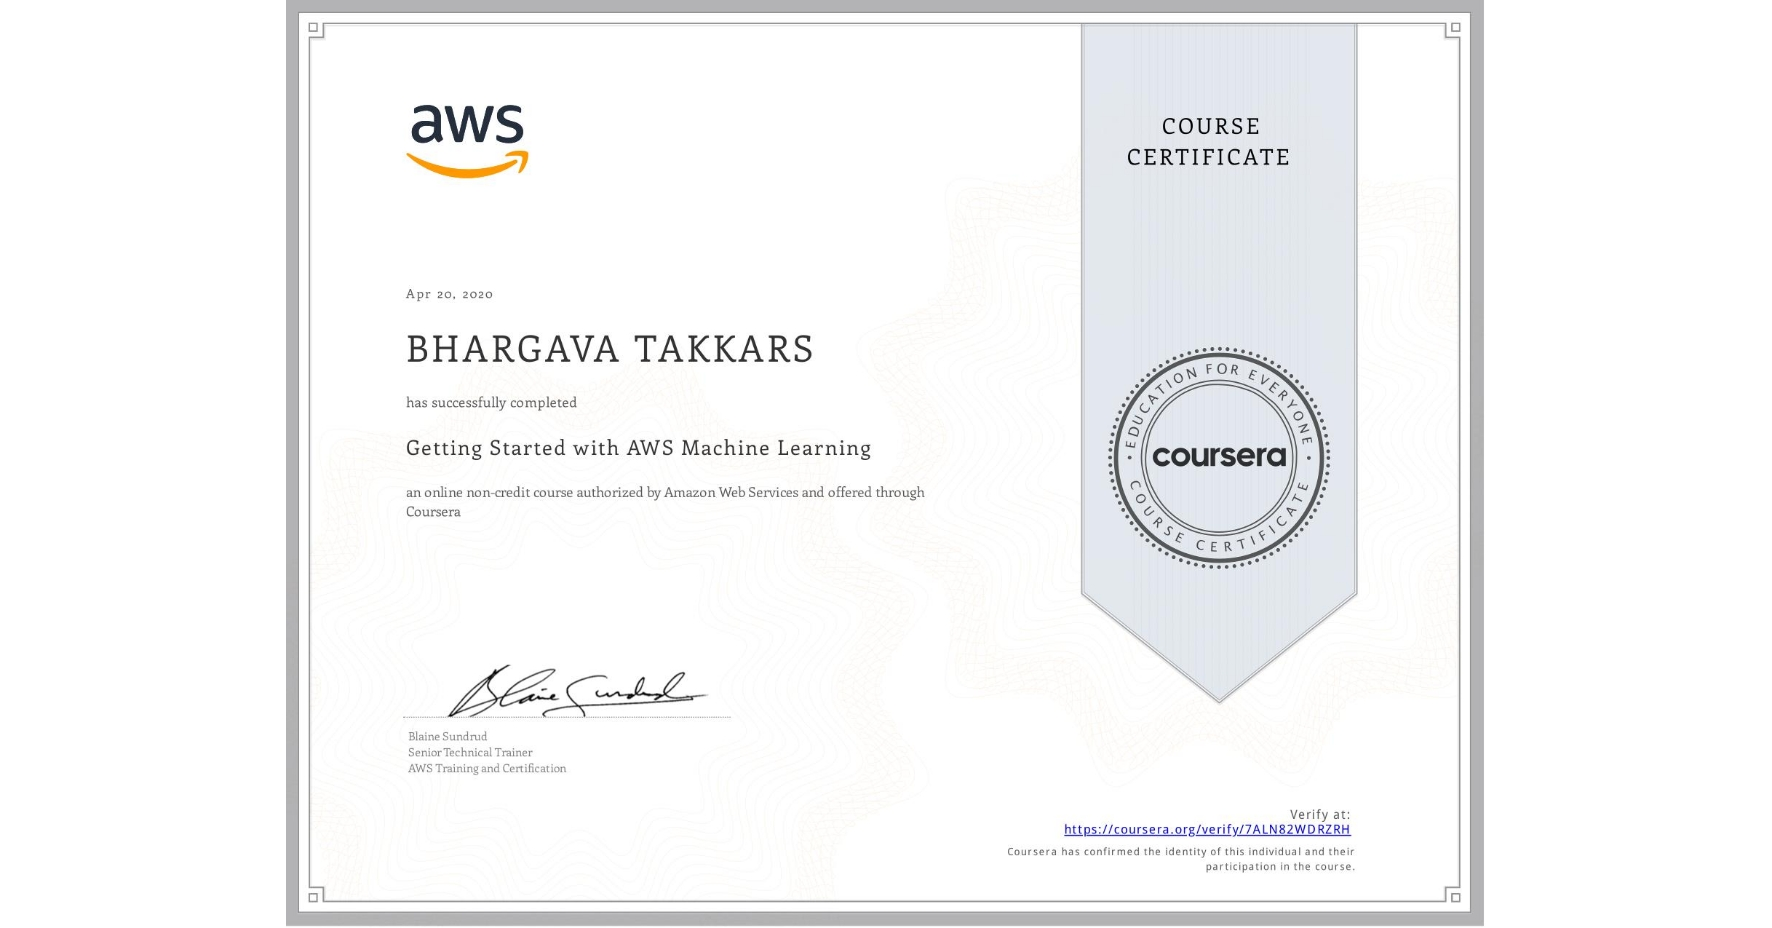 View certificate for BHARGAVA TAKKARS, Getting Started with AWS Machine Learning, an online non-credit course authorized by Amazon Web Services and offered through Coursera